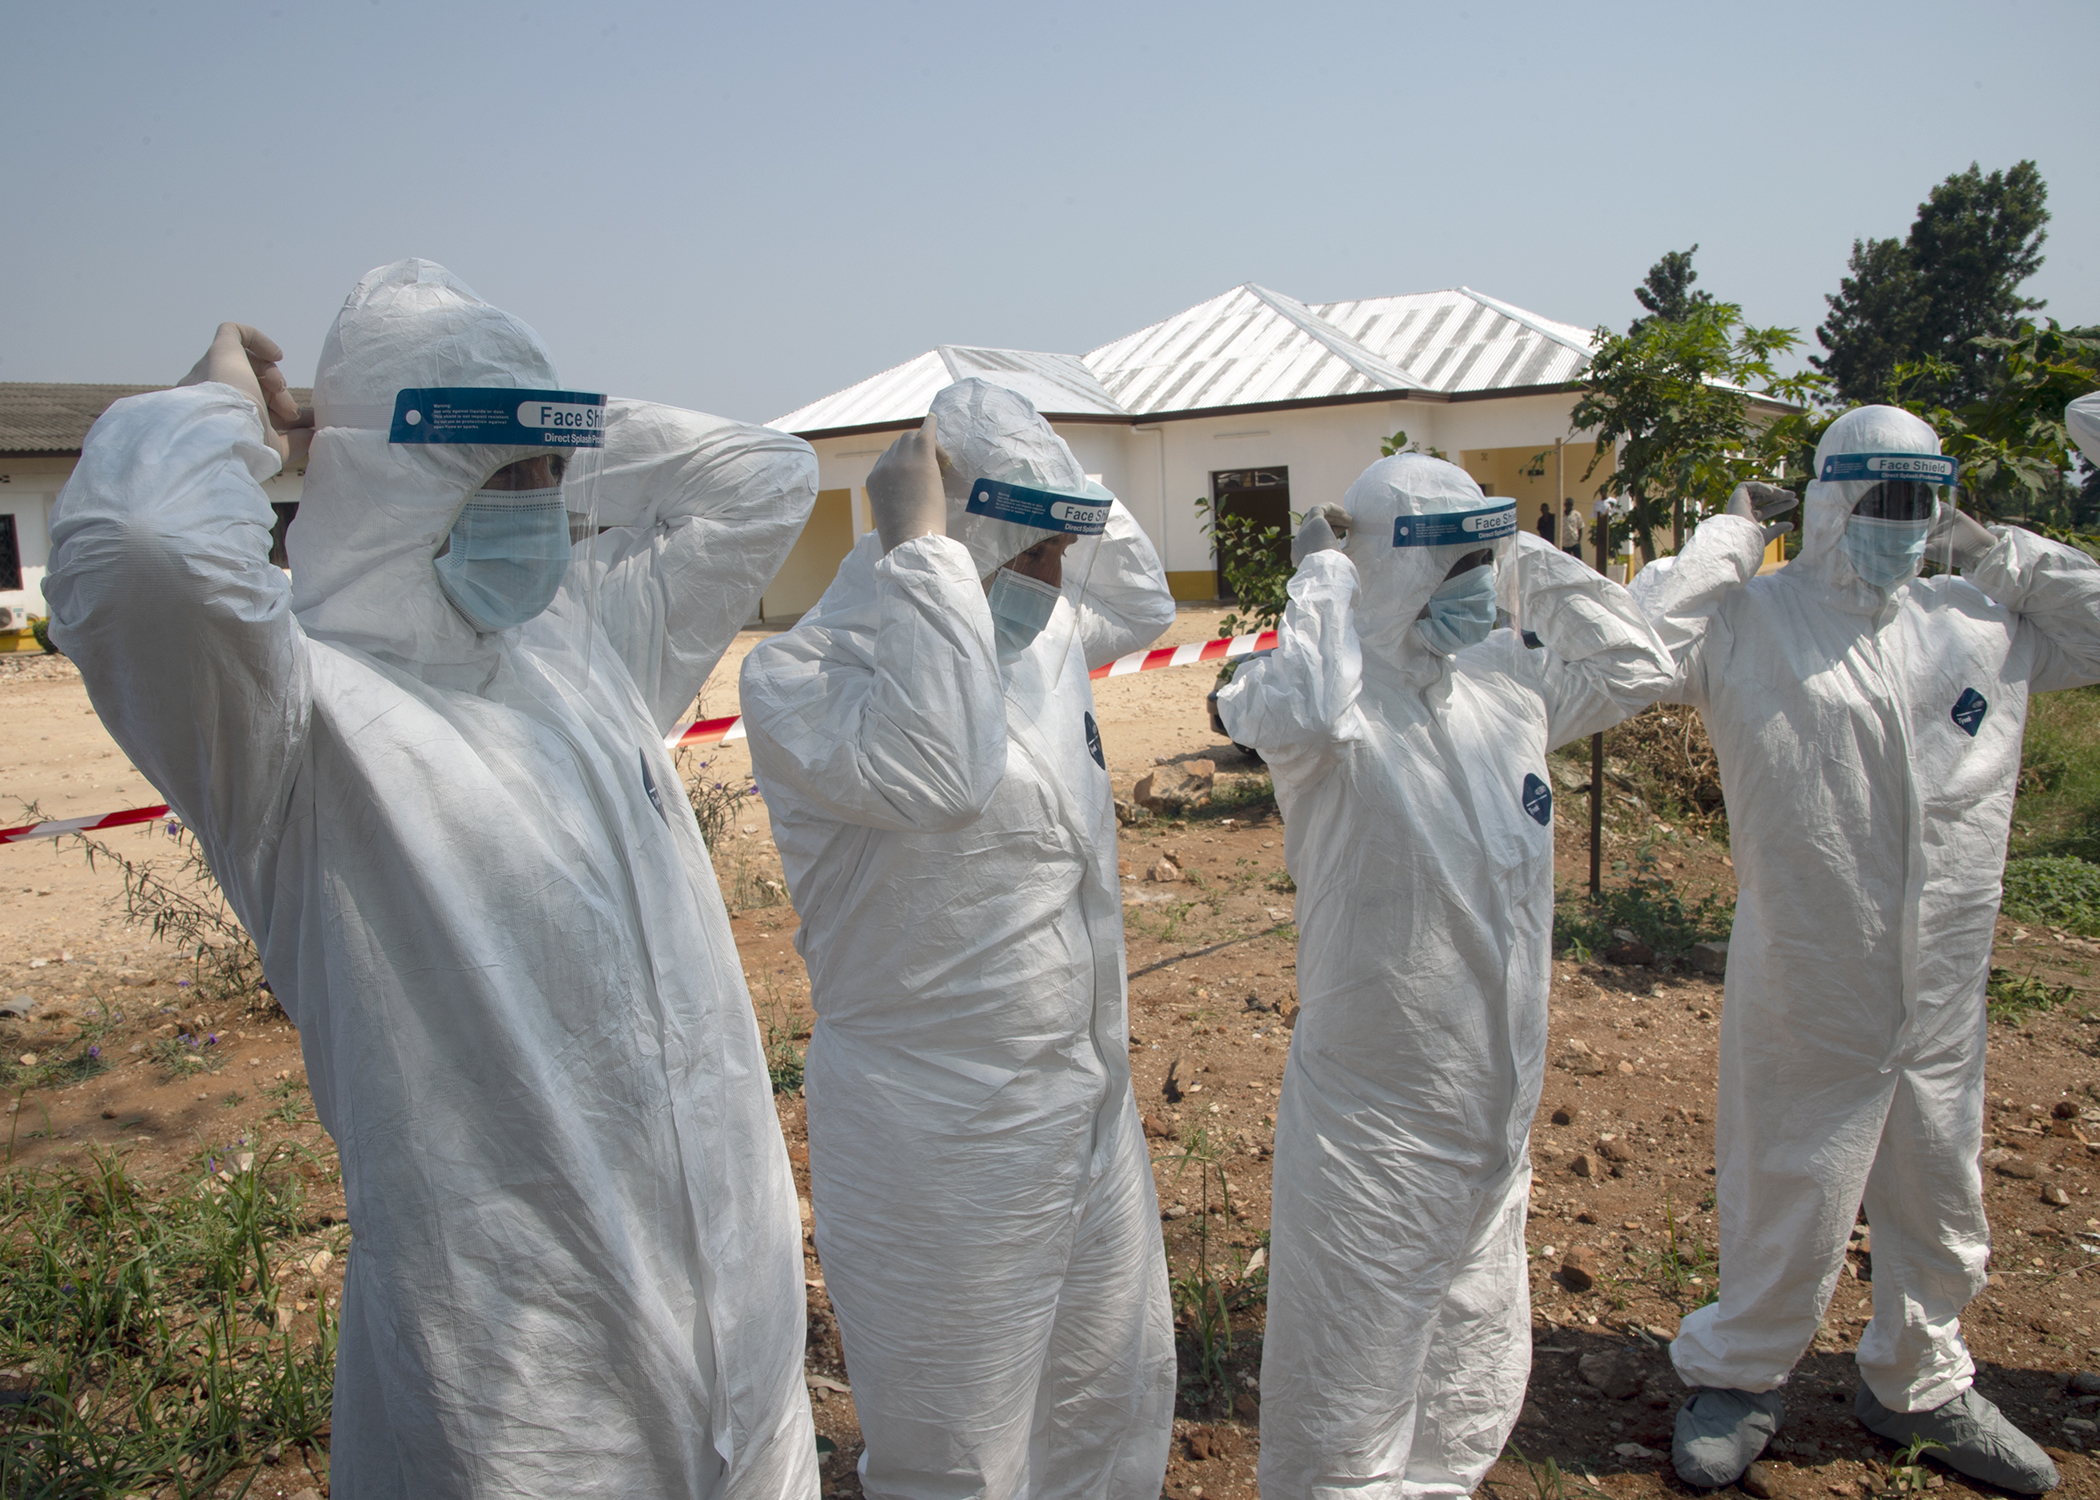 Personnel from Combined Joint Task Force-Horn of Africa (CJTF-HOA) and the Kamenge Military Hospital practice doffing hazardous material suits at the Kamenge Military Hospital, Bujumbura, Burundi, June 20, 2019. The 403rd Civil Affairs Battalion, CJTF-HOA, and military personnel and doctors from the Kamenge Military Hospital conducted an Ebola preparedness subject matter expert exchange as a precautionary measure for personnel near the border of the Democratic Republic of Congo. (U.S. Navy photo by Mass Communication Specialist 1st Class Nick Scott)